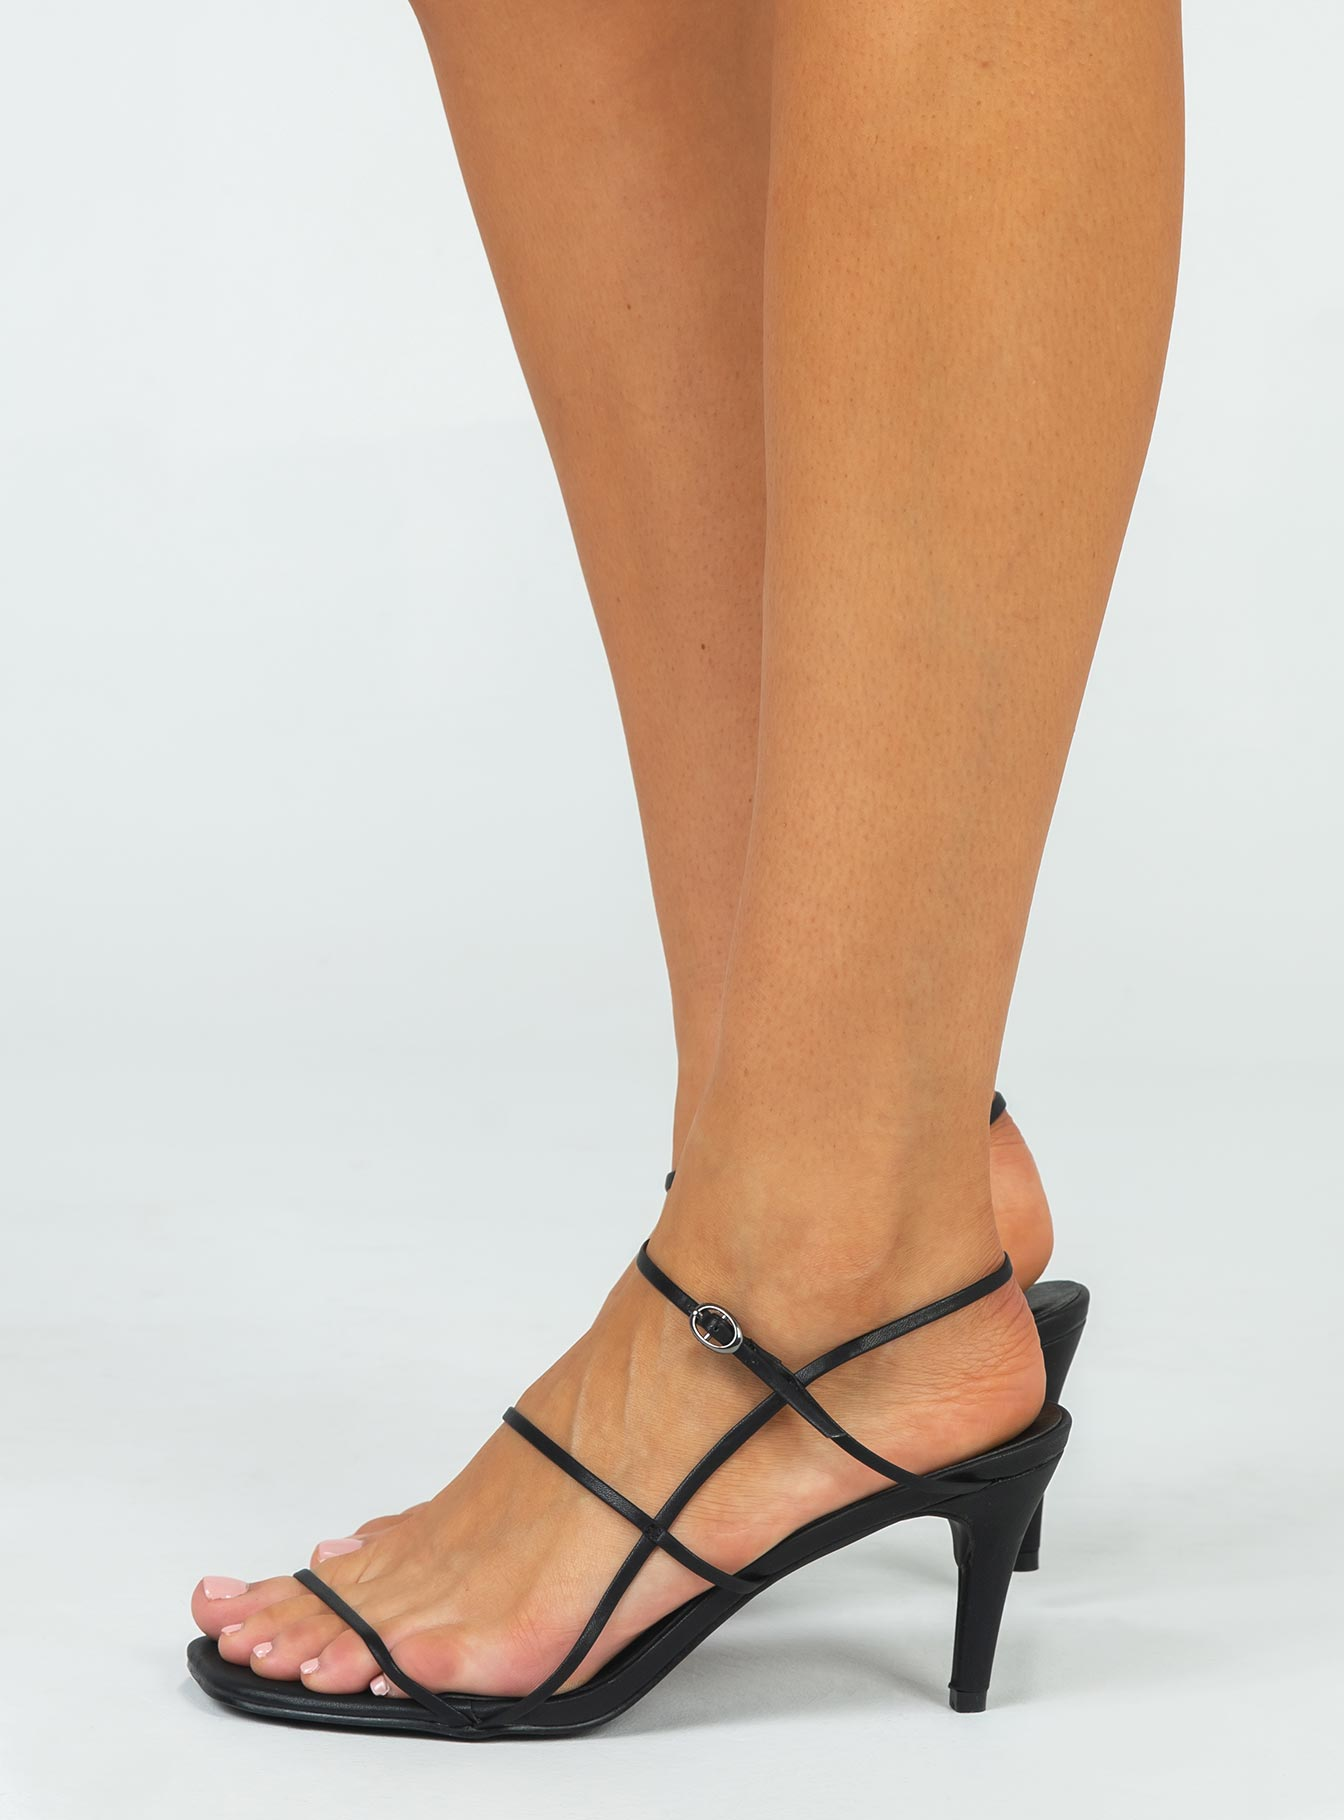 Therapy Flossy Heels Black